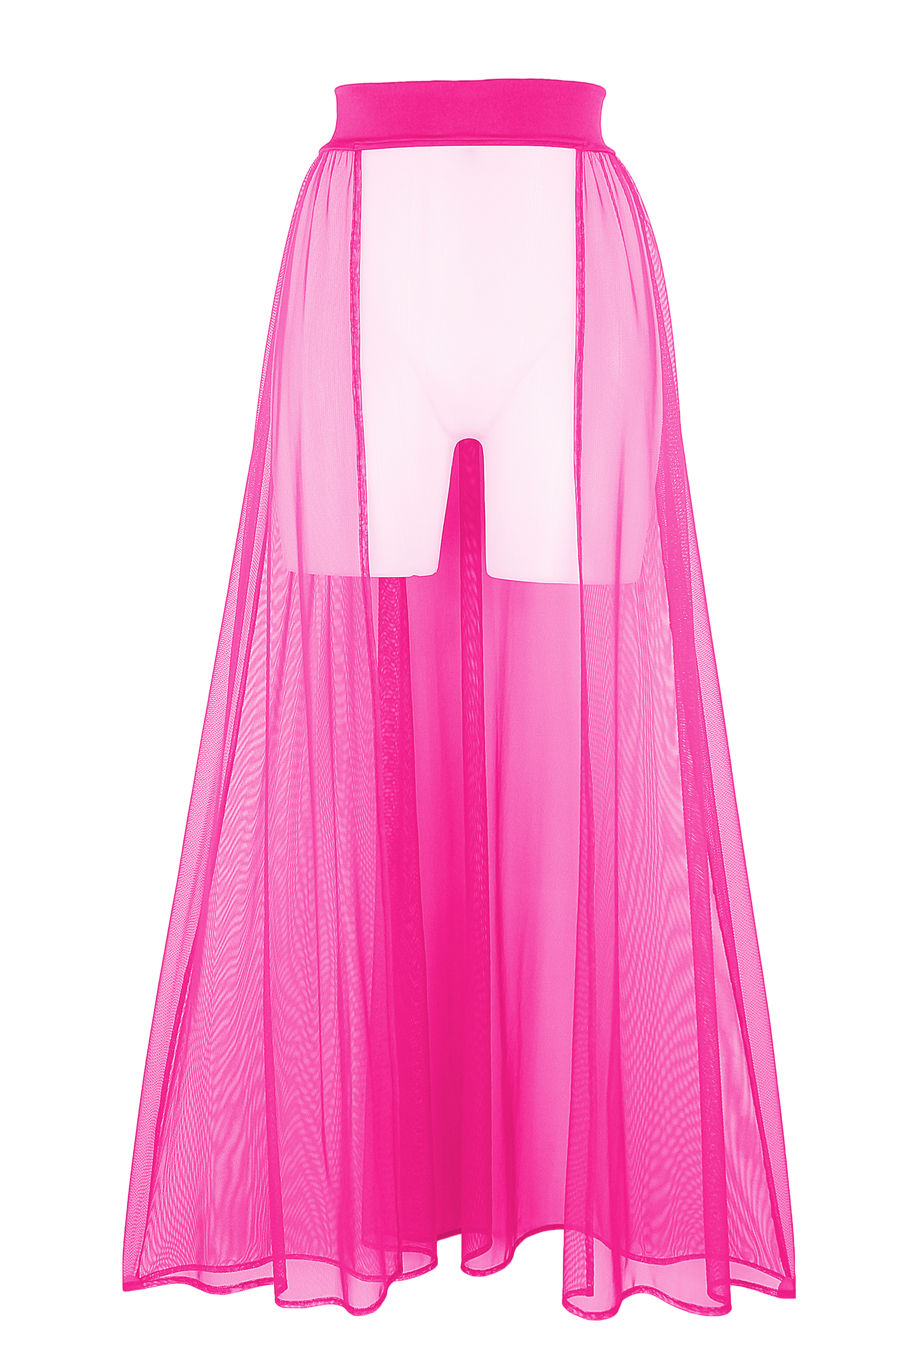 Mesh Maxi Skirt Cover-up Long / RESORT SKIRT NEON PINK,COVER-UPS - EXES LINGERIE